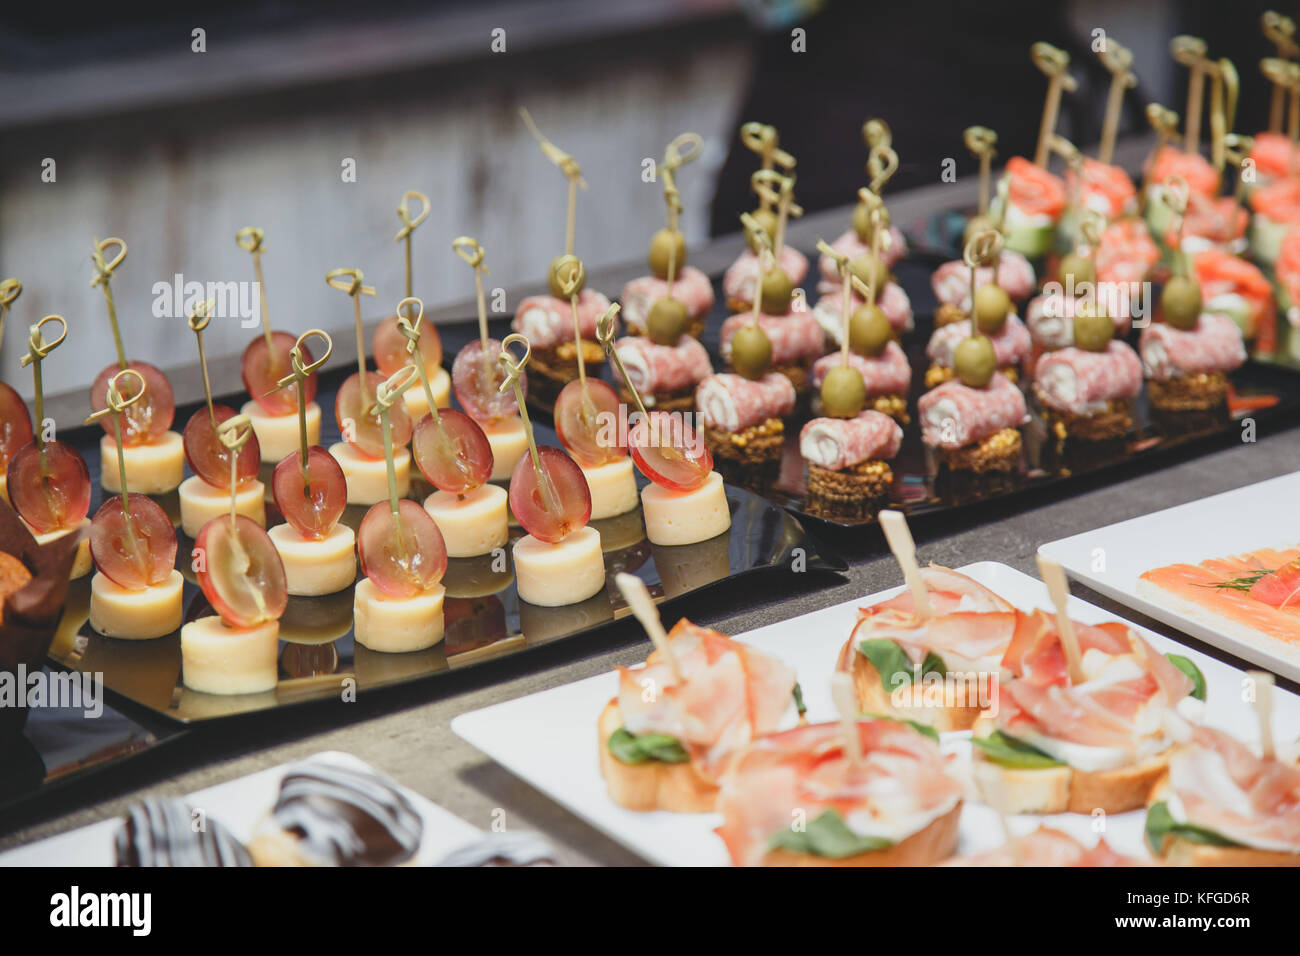 Catering food specialties for an event on table - Stock Image